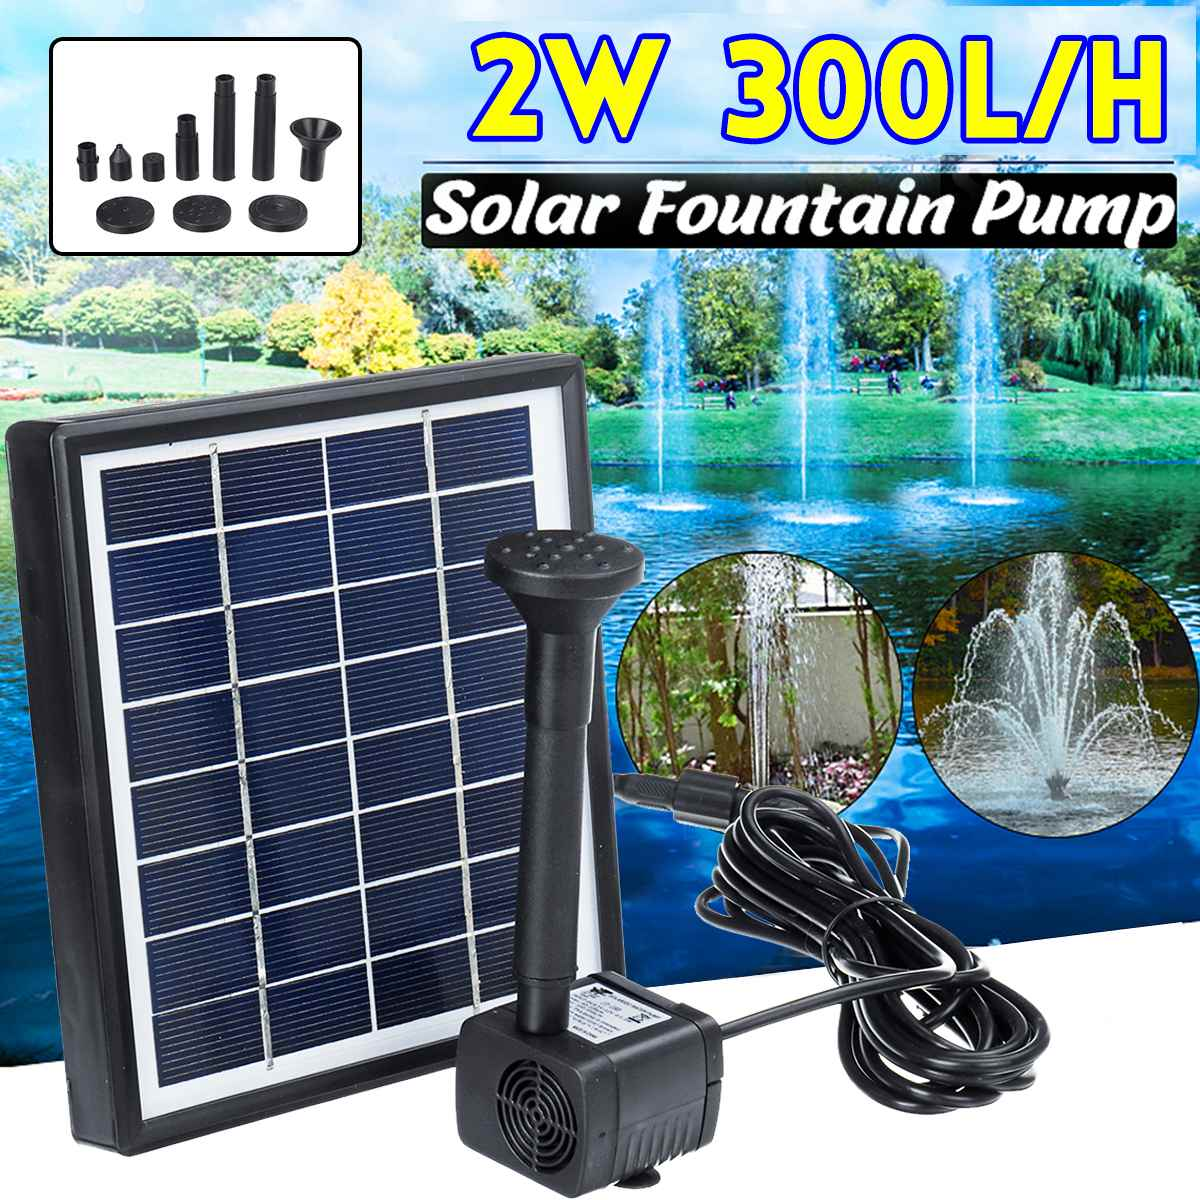 2W 300L/H Mini Solar Power Panel Water Pump Home Garden Decoration Outdoor Landscape Floating Fountain For Birdbath Pool Pond